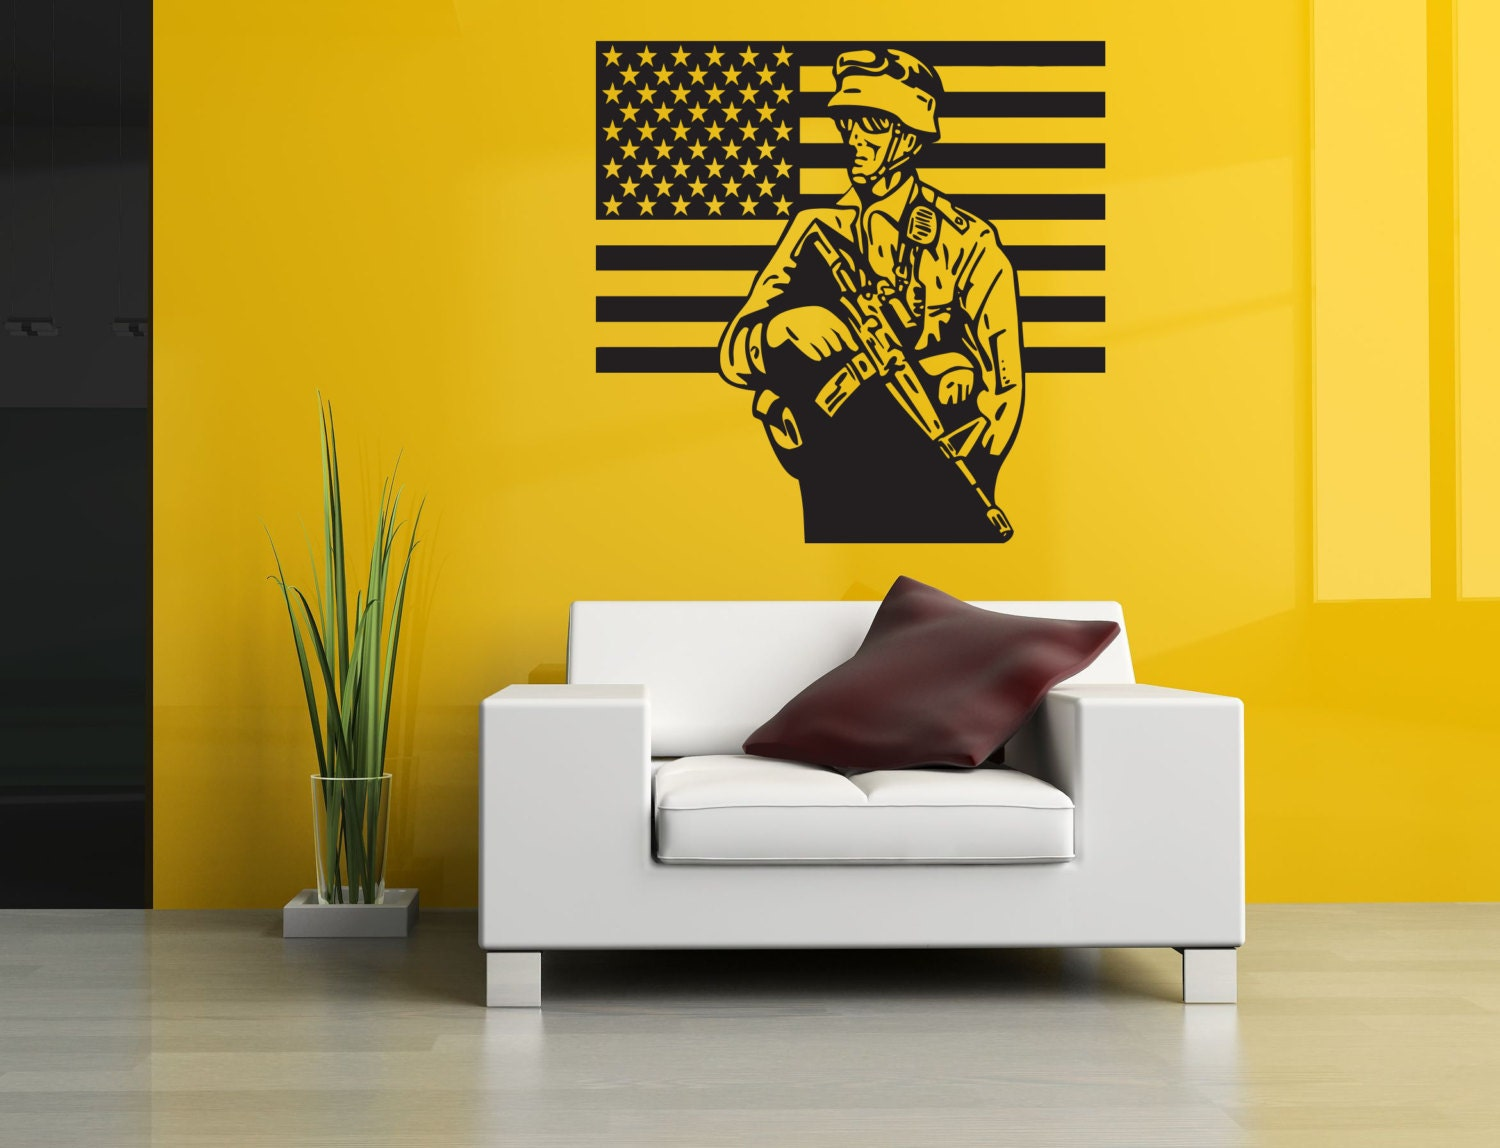 Removable Vinyl Sticker Mural Decal Wall Decor Poster Art Patriotic ...